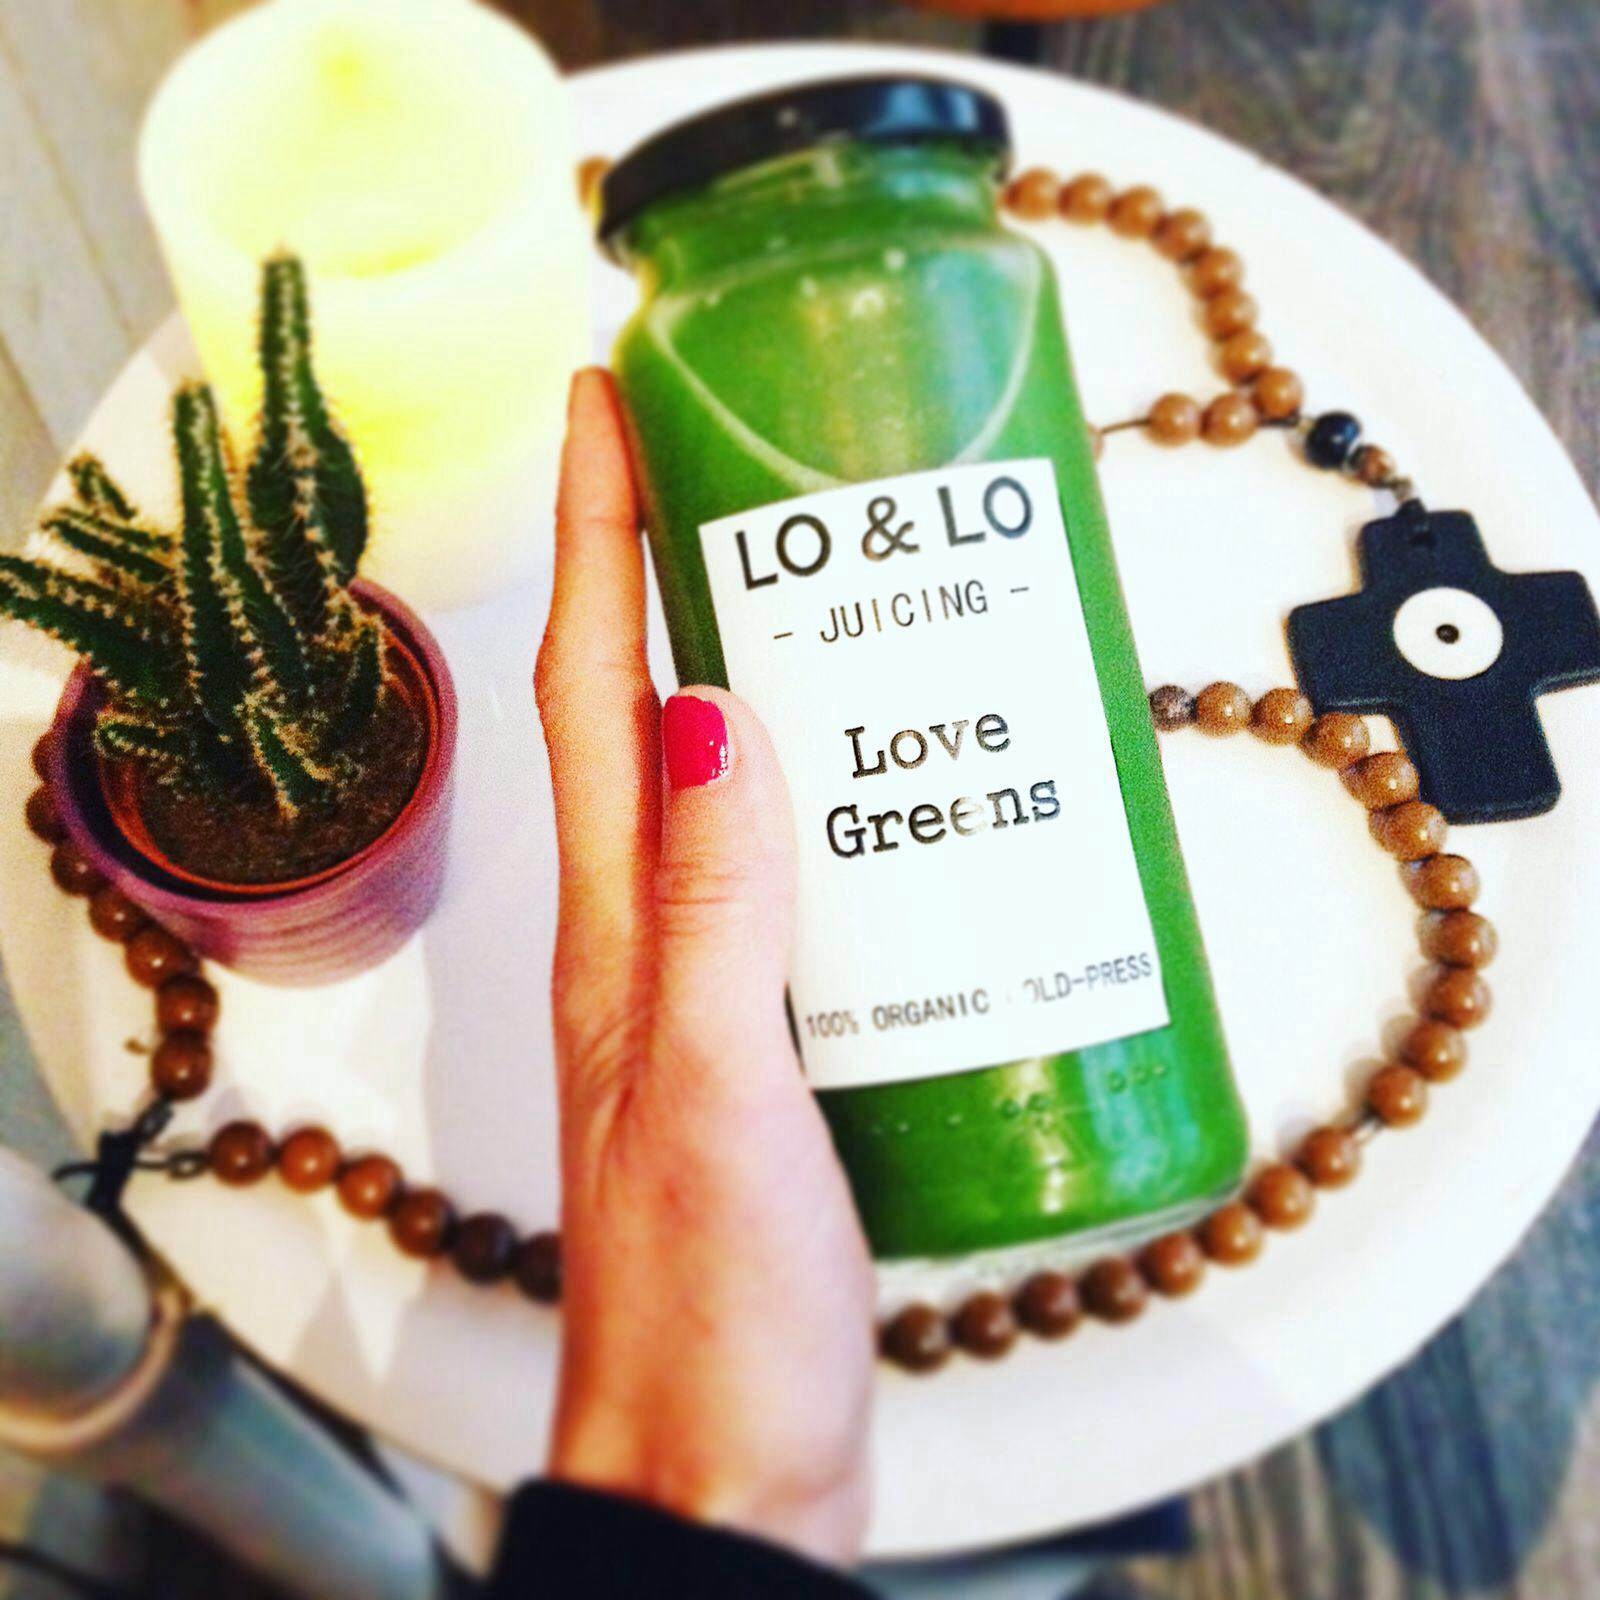 Love Greens cold-pressed juice -  a detox favorite!